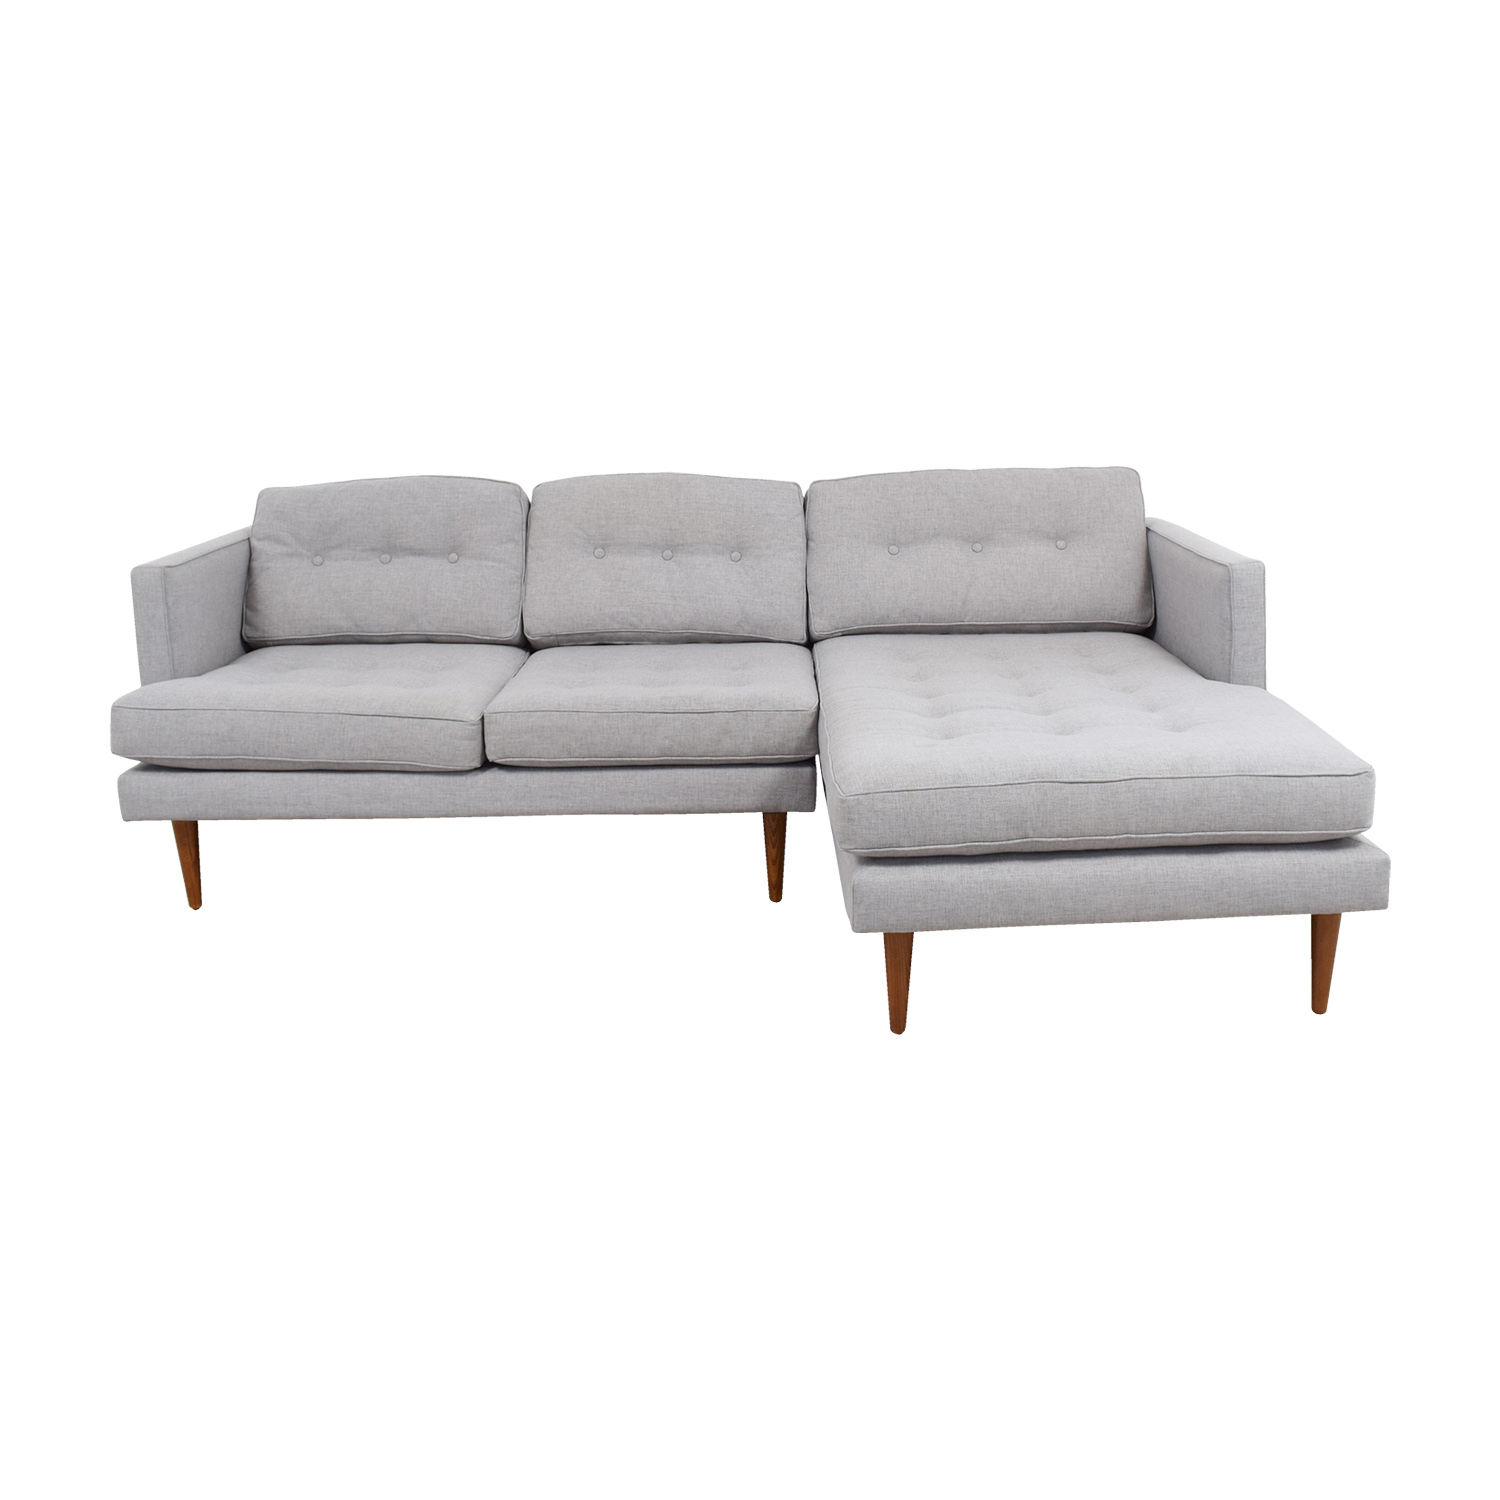 West Elm West Elm Grey Tufted Chaise Sectional ...